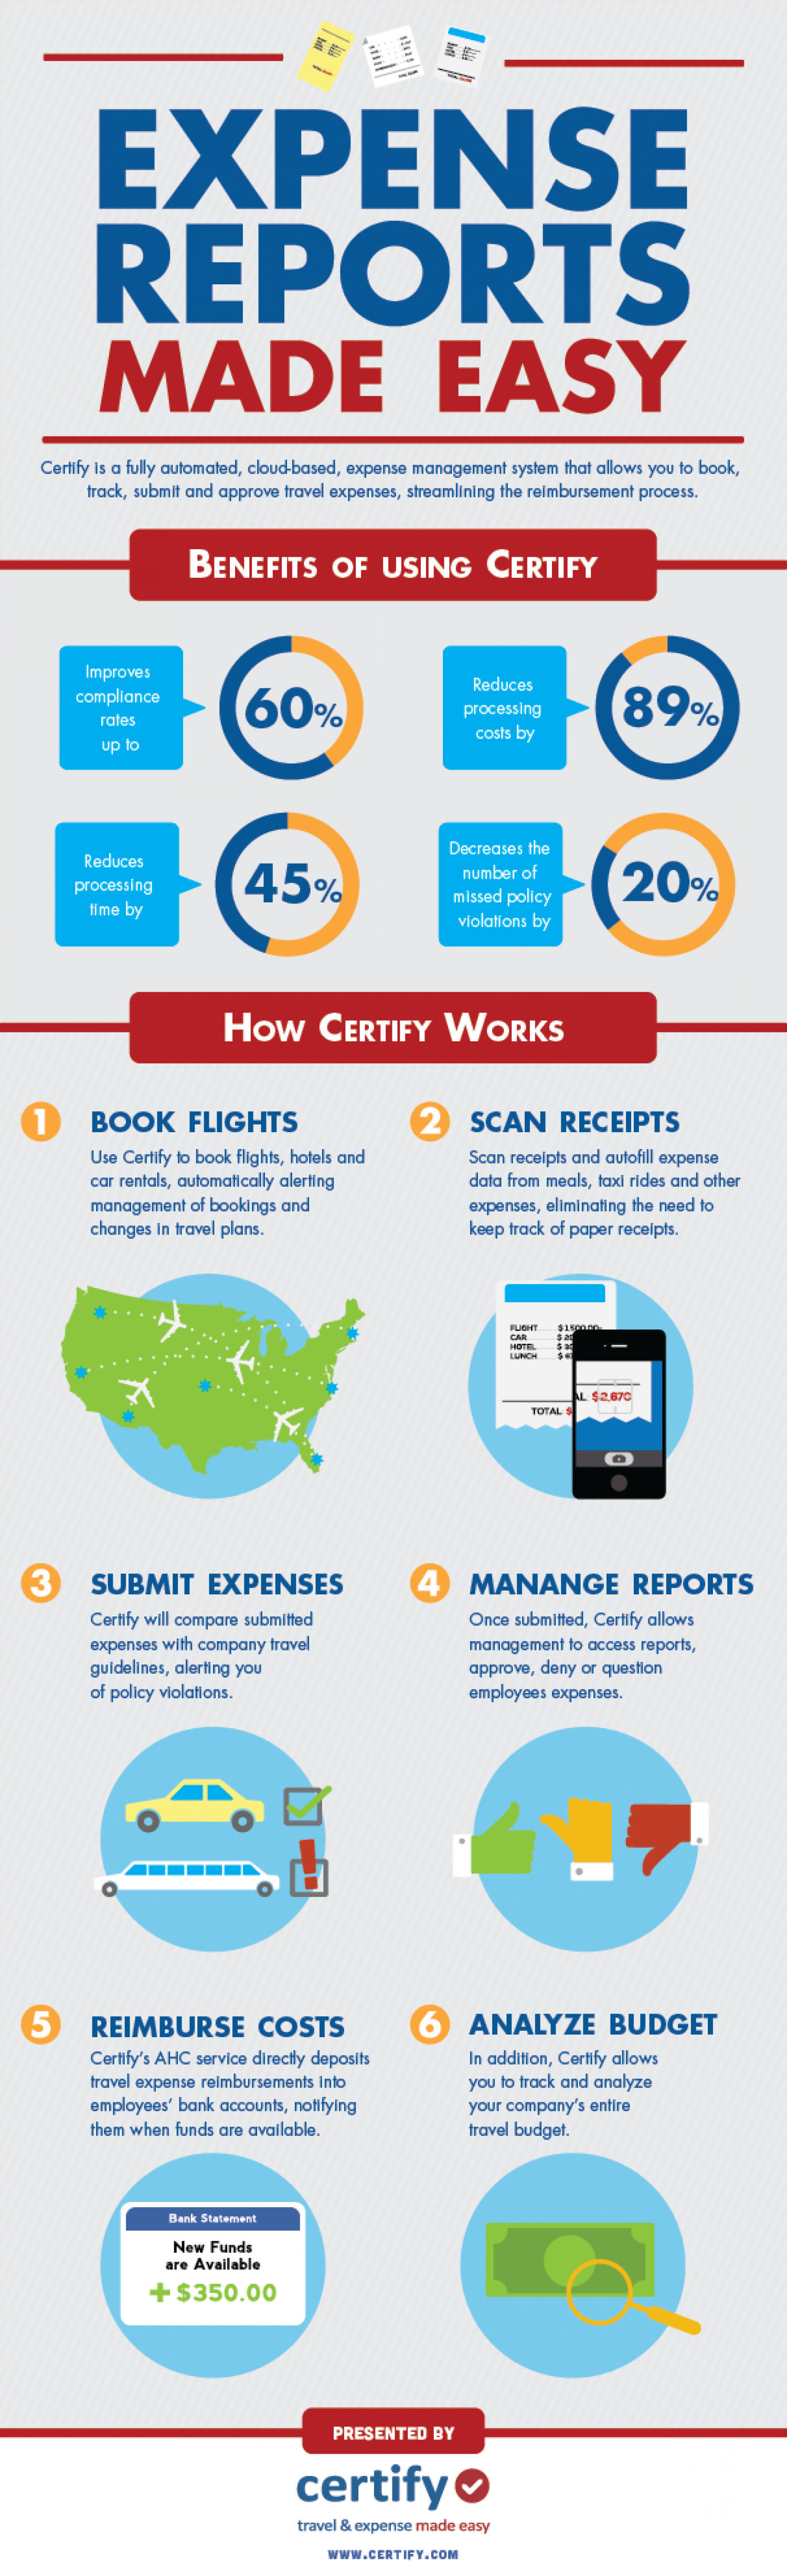 Expense Reports Made Easy Infographic